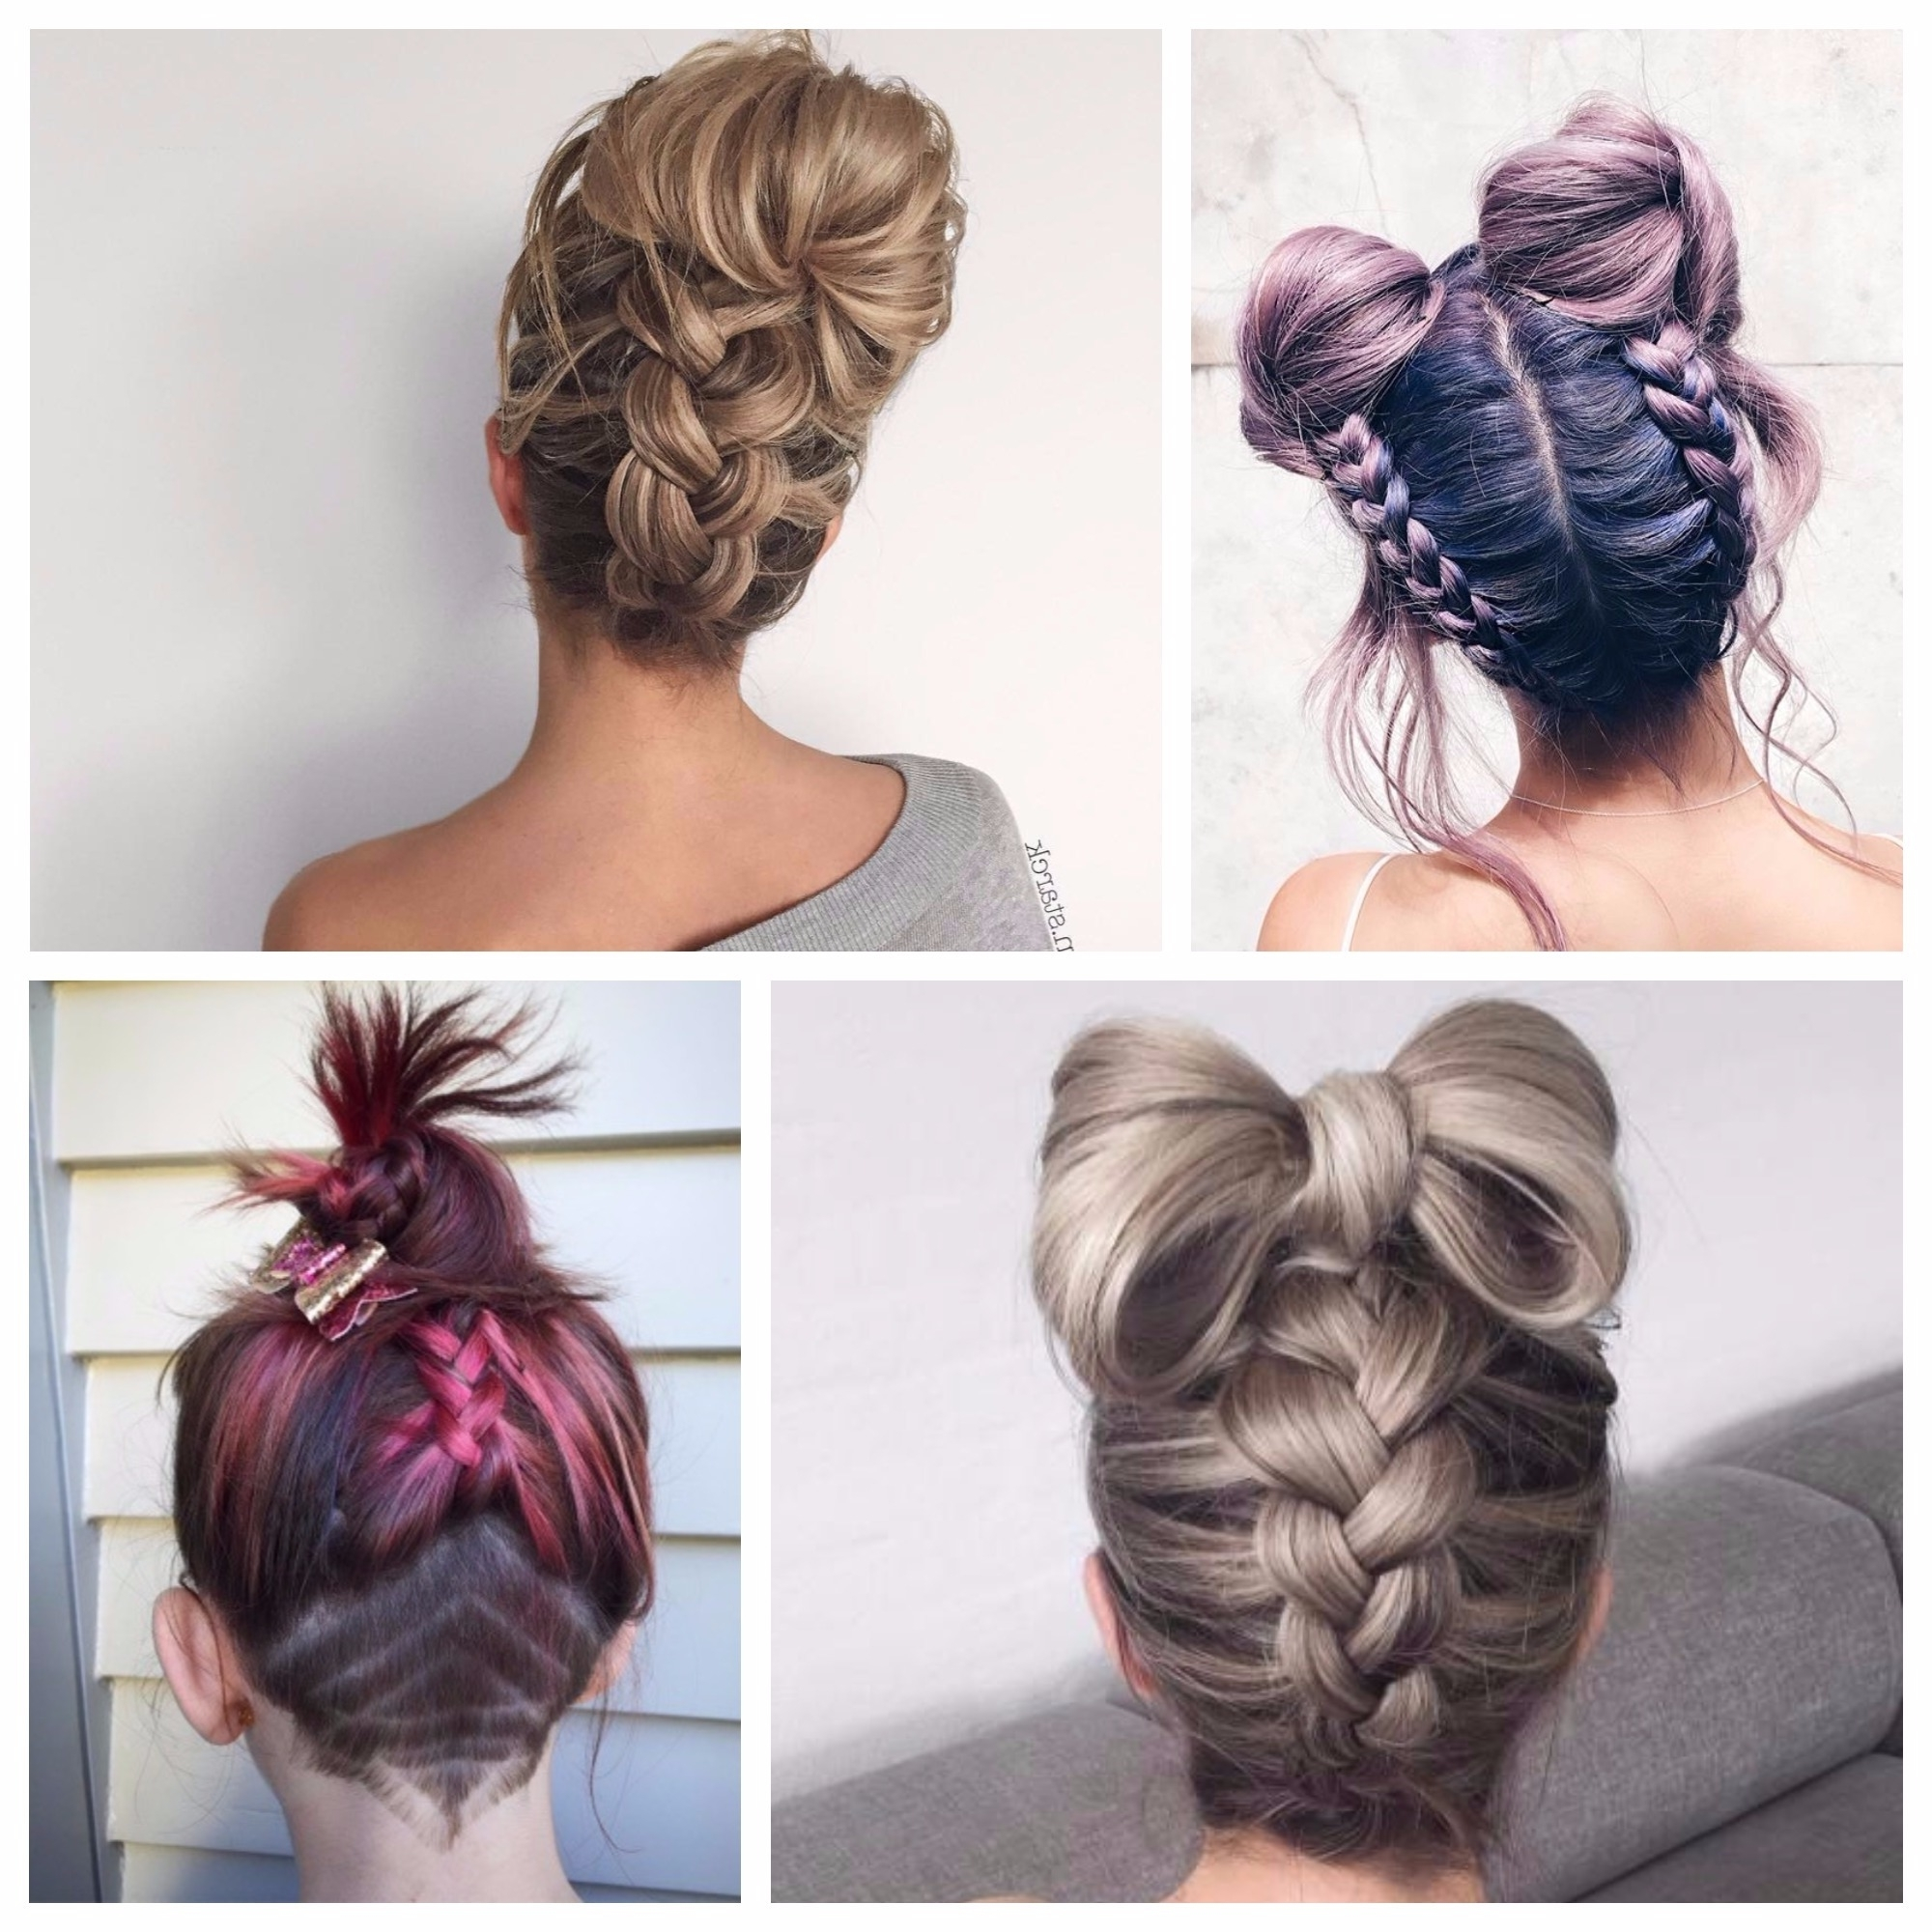 Brilliant Ideas Of Braided Hairstyles With Buns Charming Bun In Widely Used Upside Down Braids Into Messy Bun (View 3 of 15)